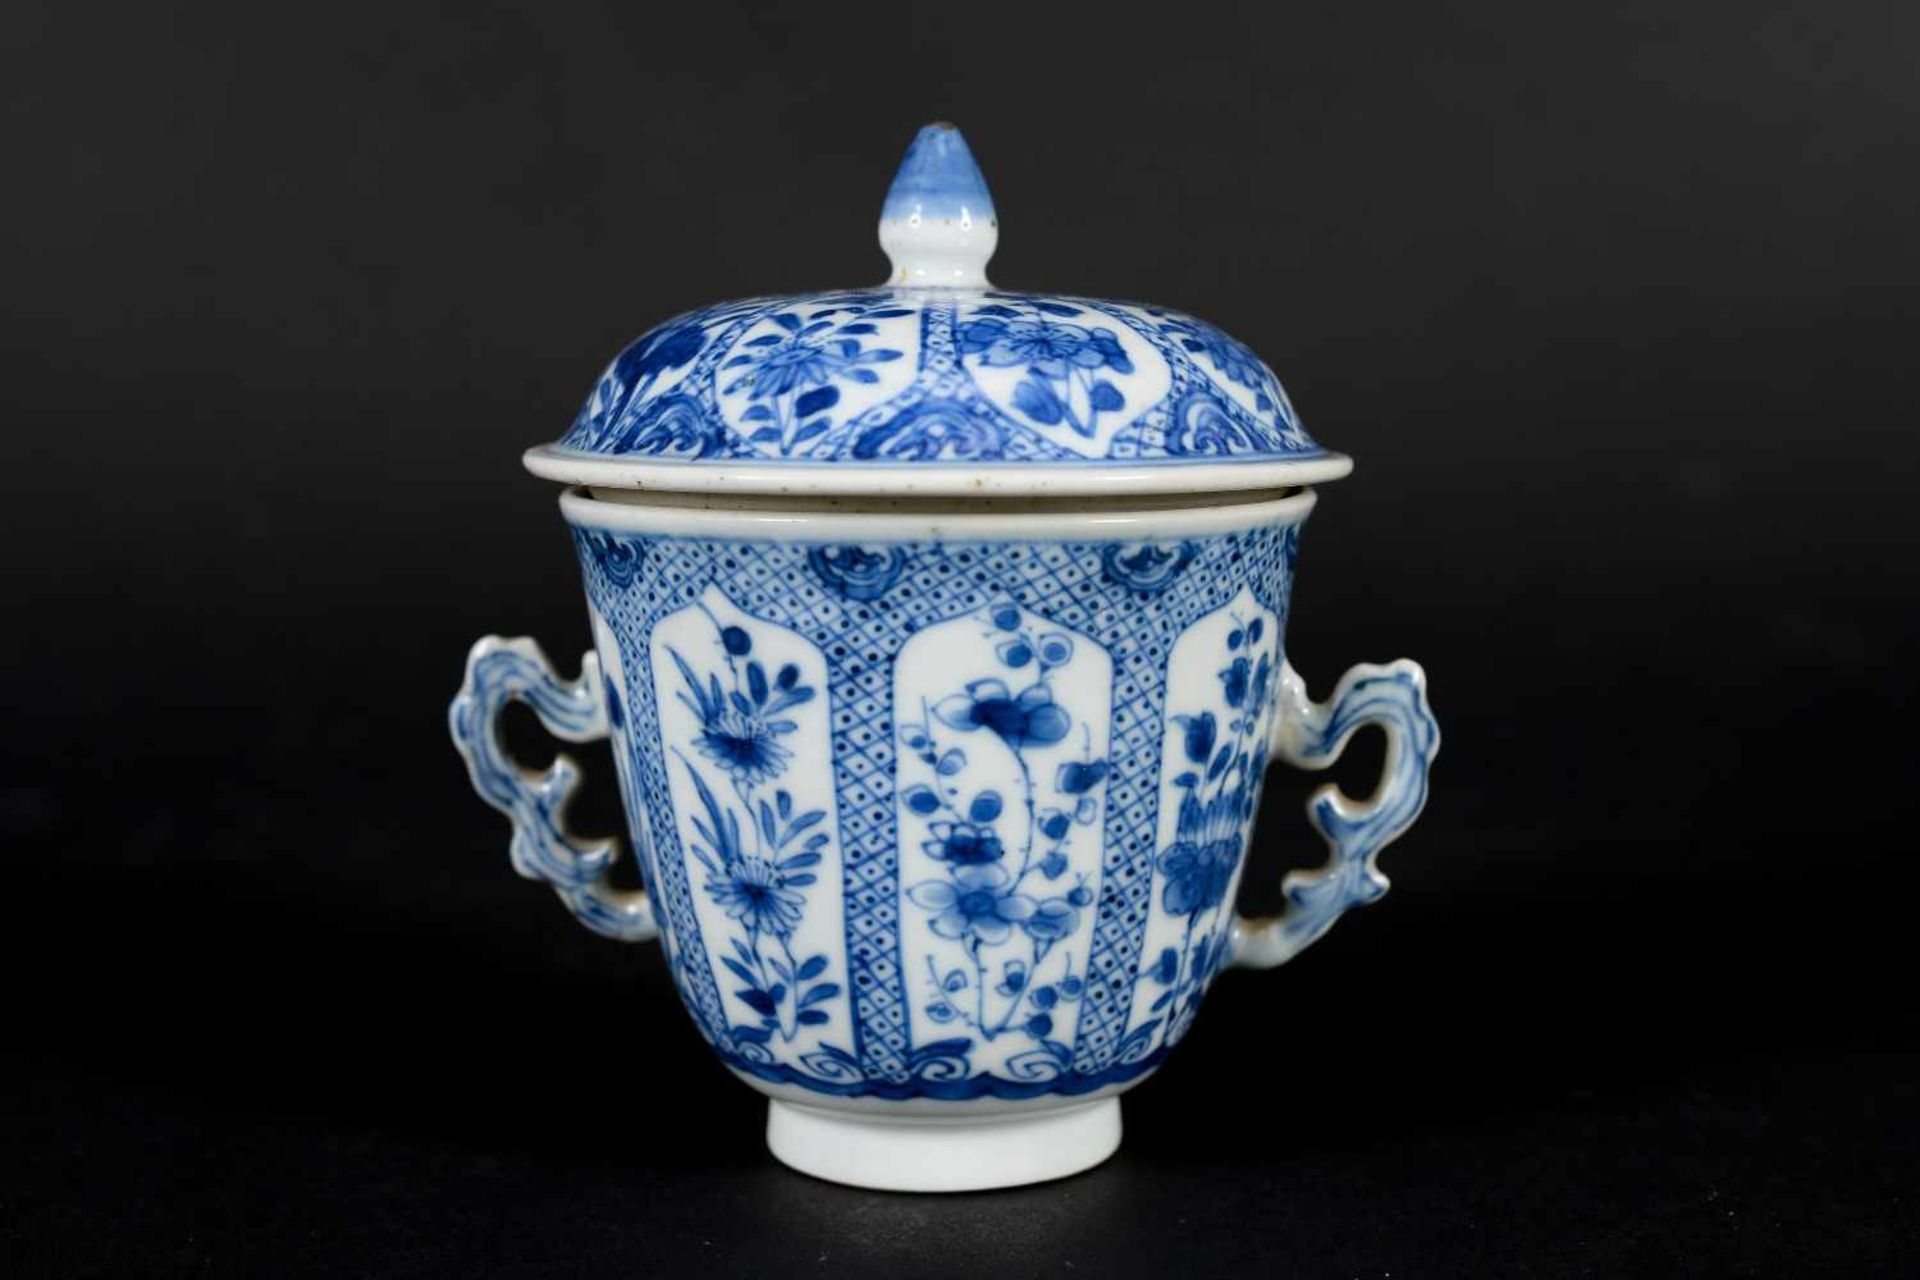 A blue and white porcelain lidded cup with two handles on a deep saucer, decorated with flowers. - Bild 5 aus 9